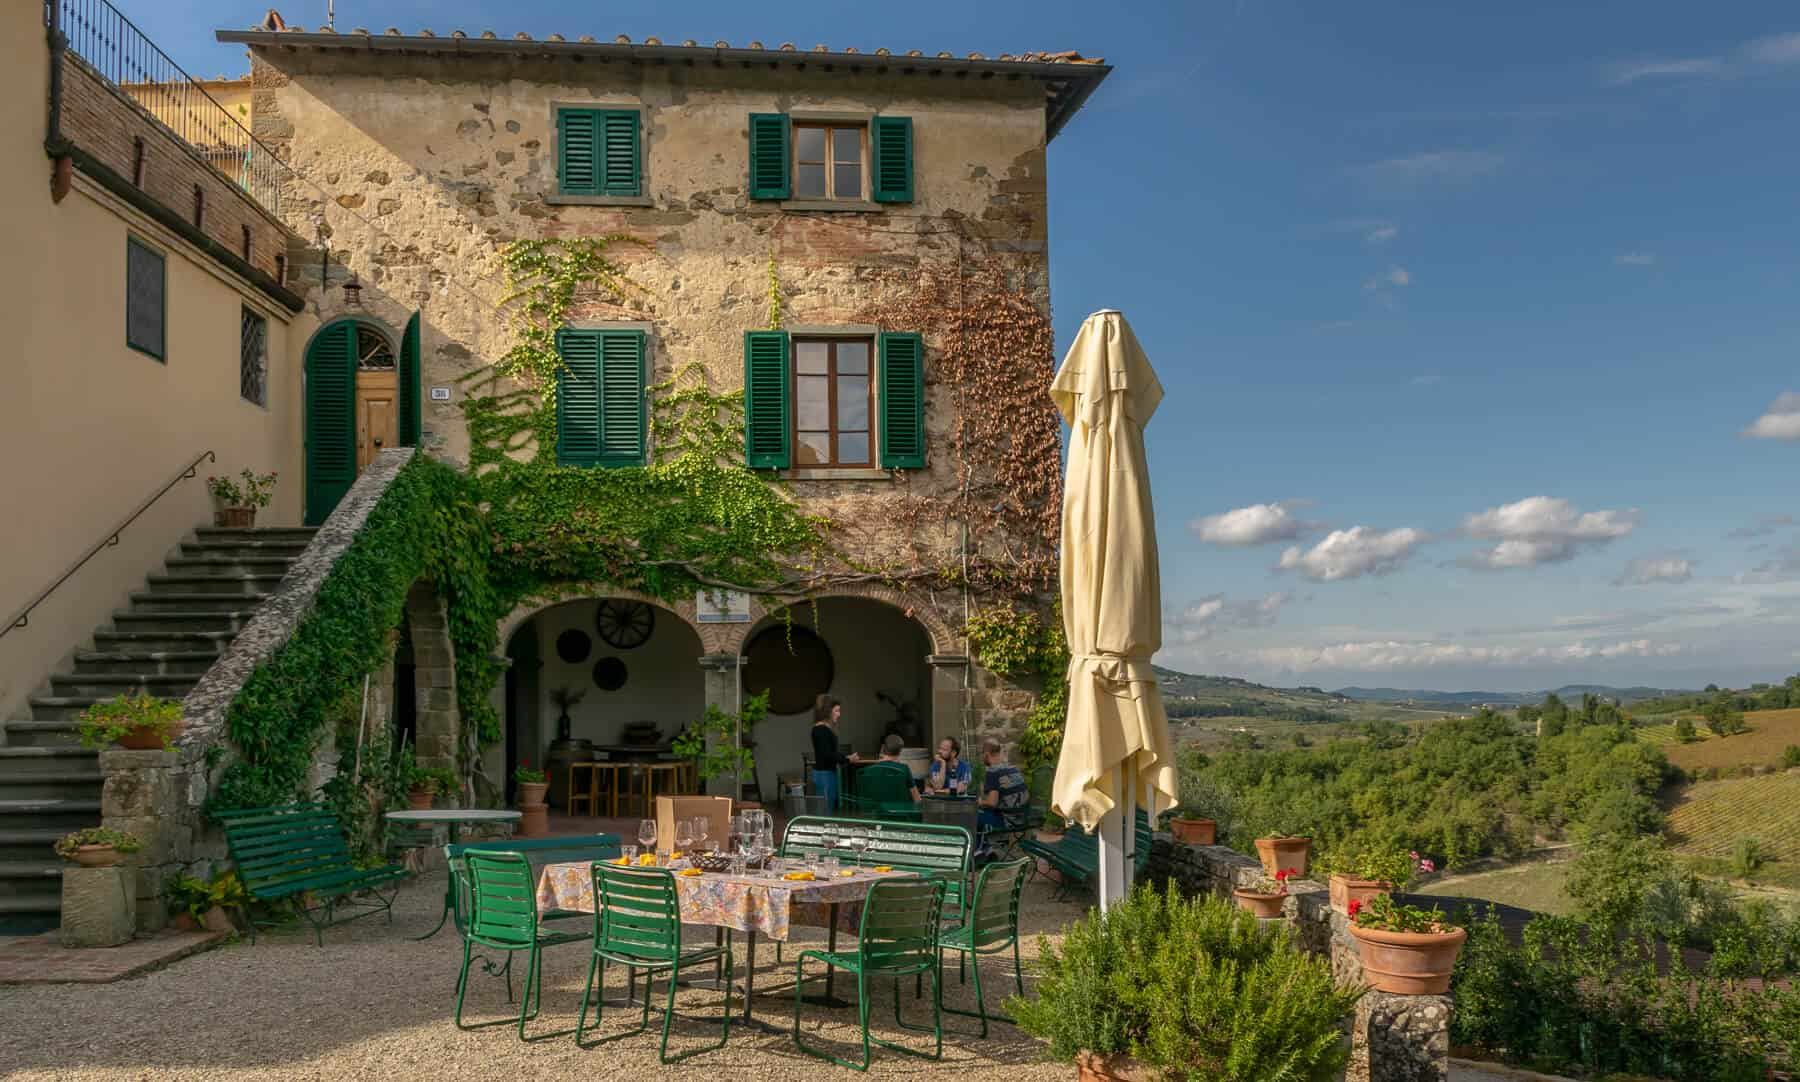 The Chianti Wine Tour in Tuscany You Can't Miss - Travel ...